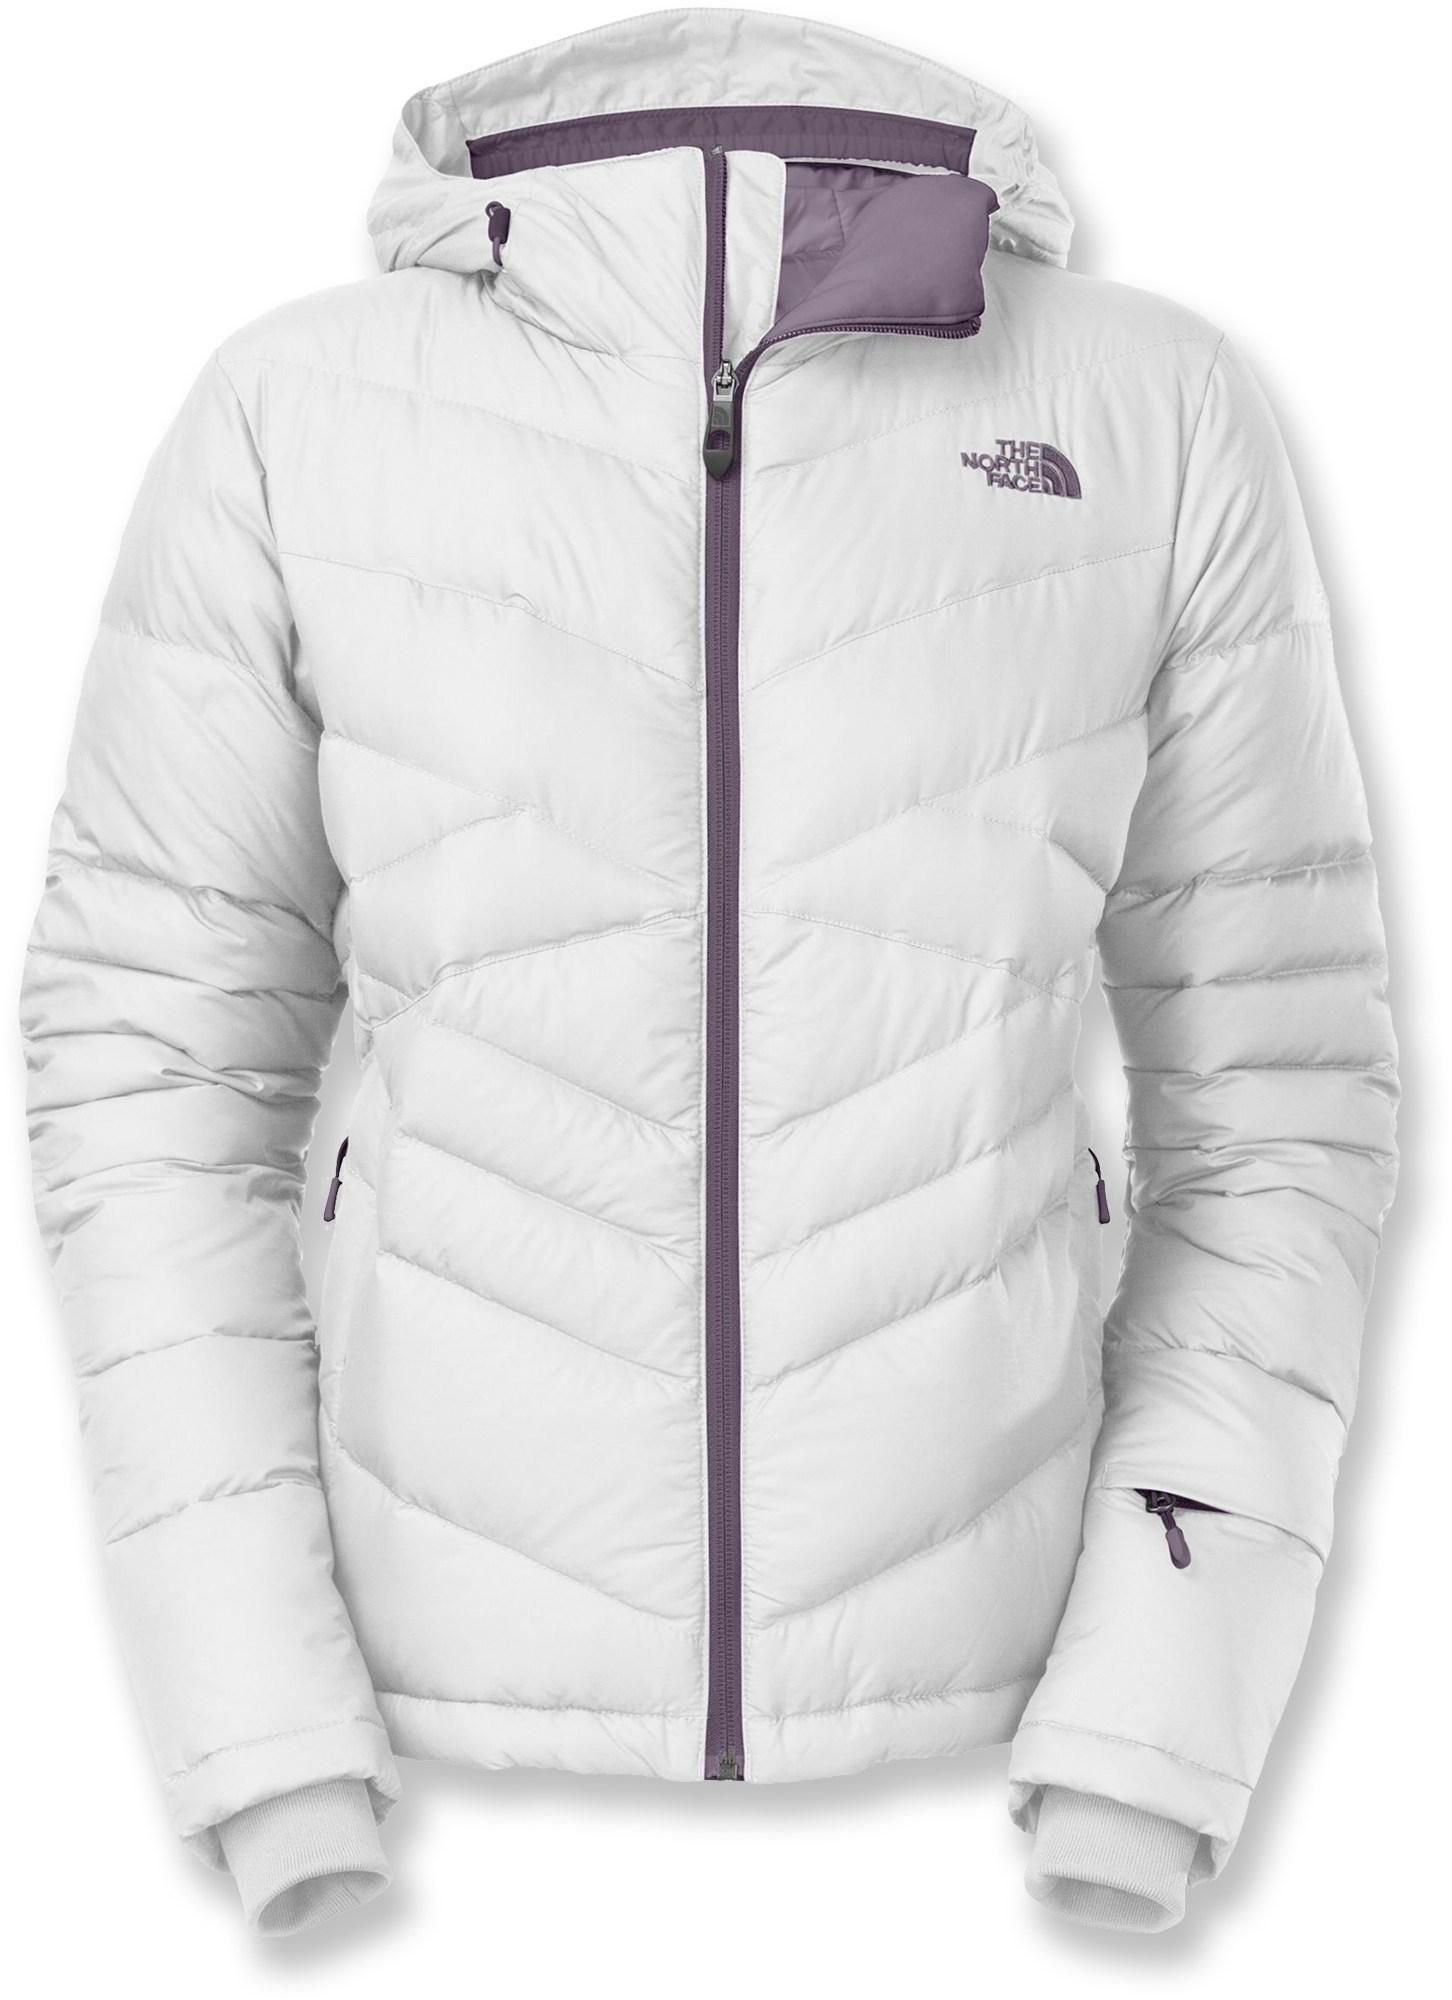 950b694bac1a The North Face Destiny Down Insulated Jacket - Women s